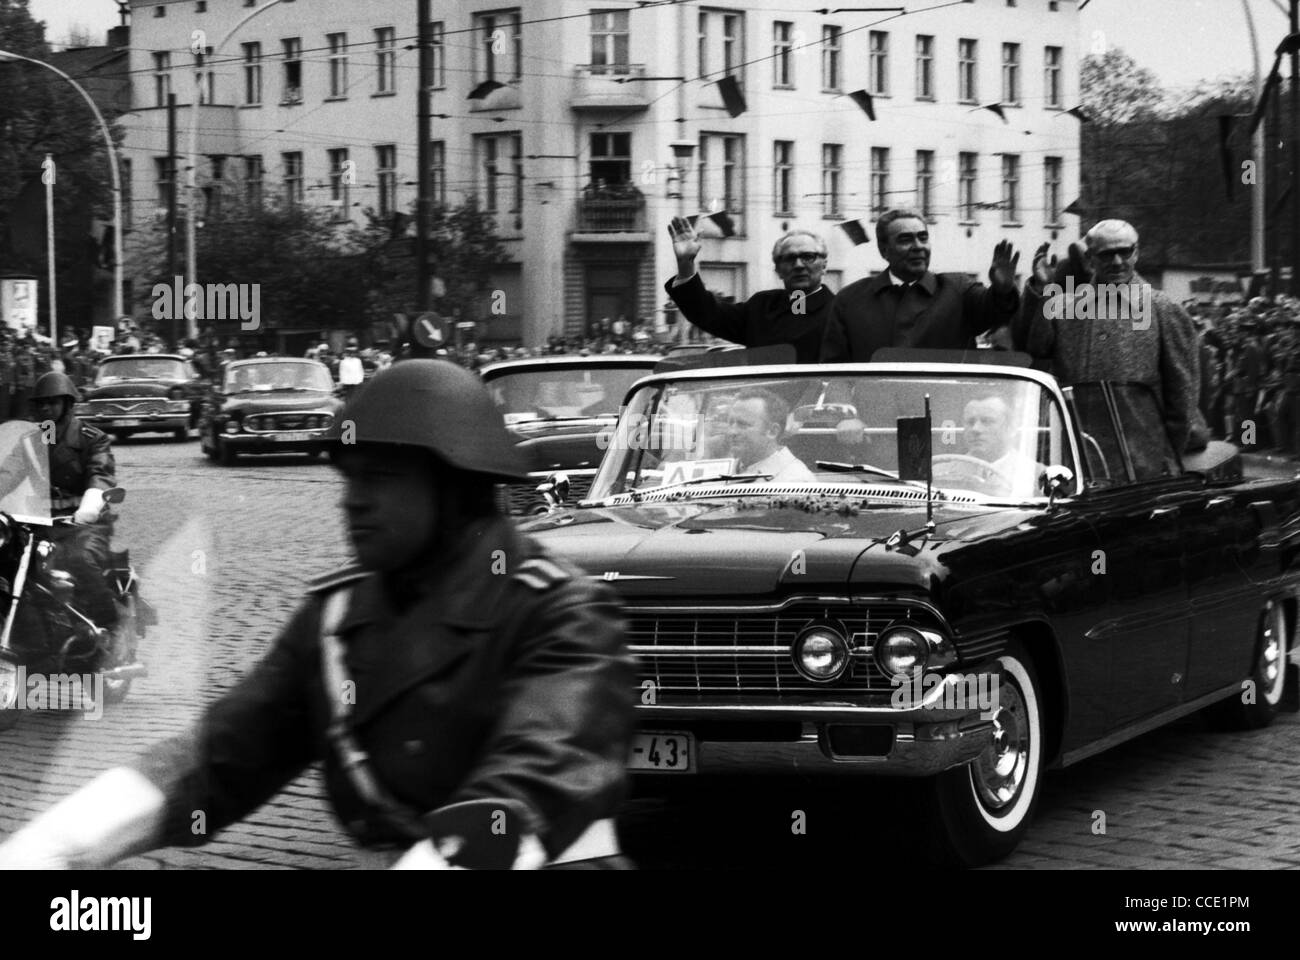 state visit of the soviet party leader leonid brezhnev in east berlin stock photo royalty free. Black Bedroom Furniture Sets. Home Design Ideas